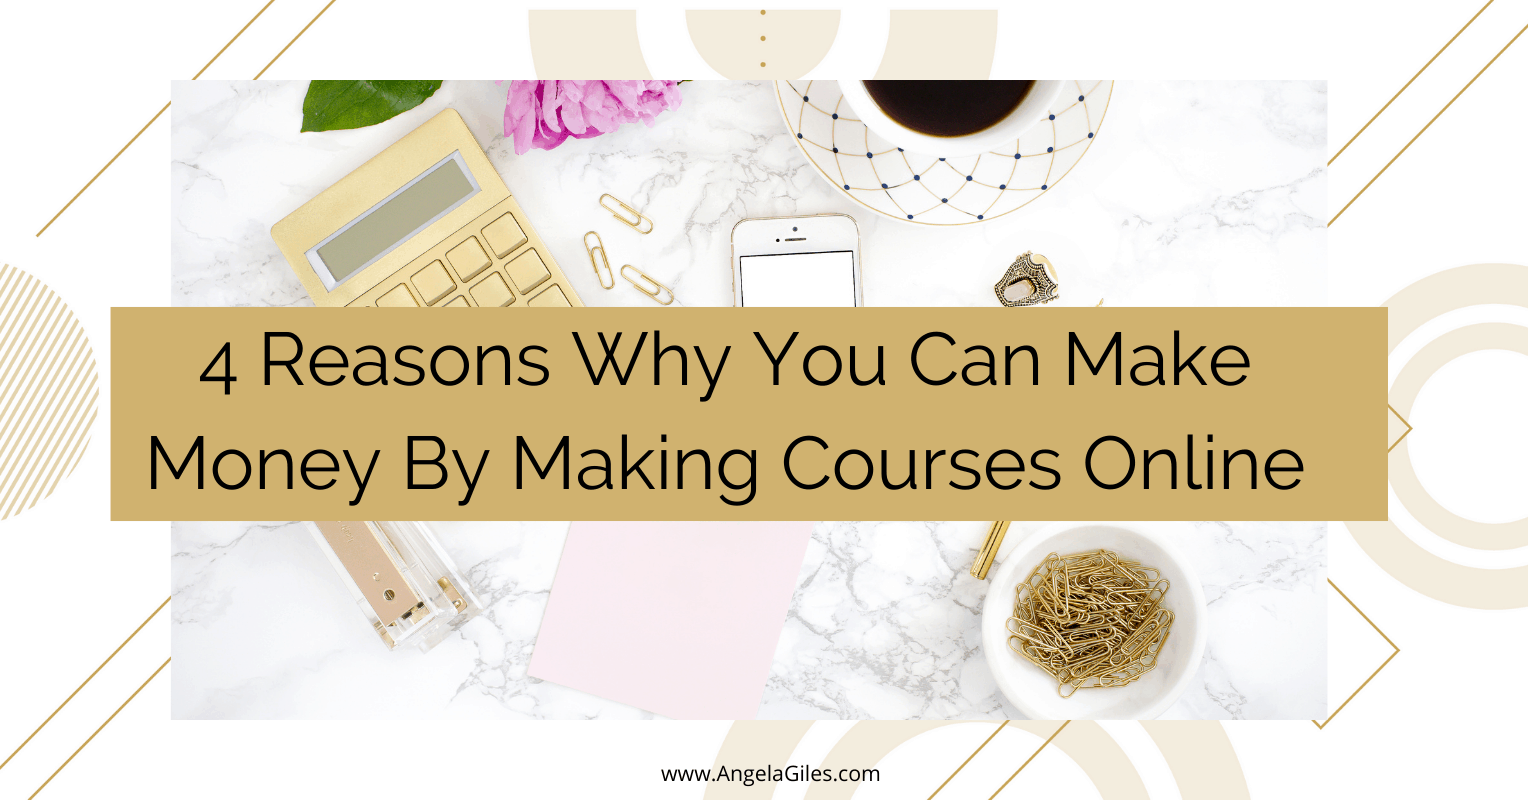 4 Reasons Why You Can Make Money By Making Courses Online